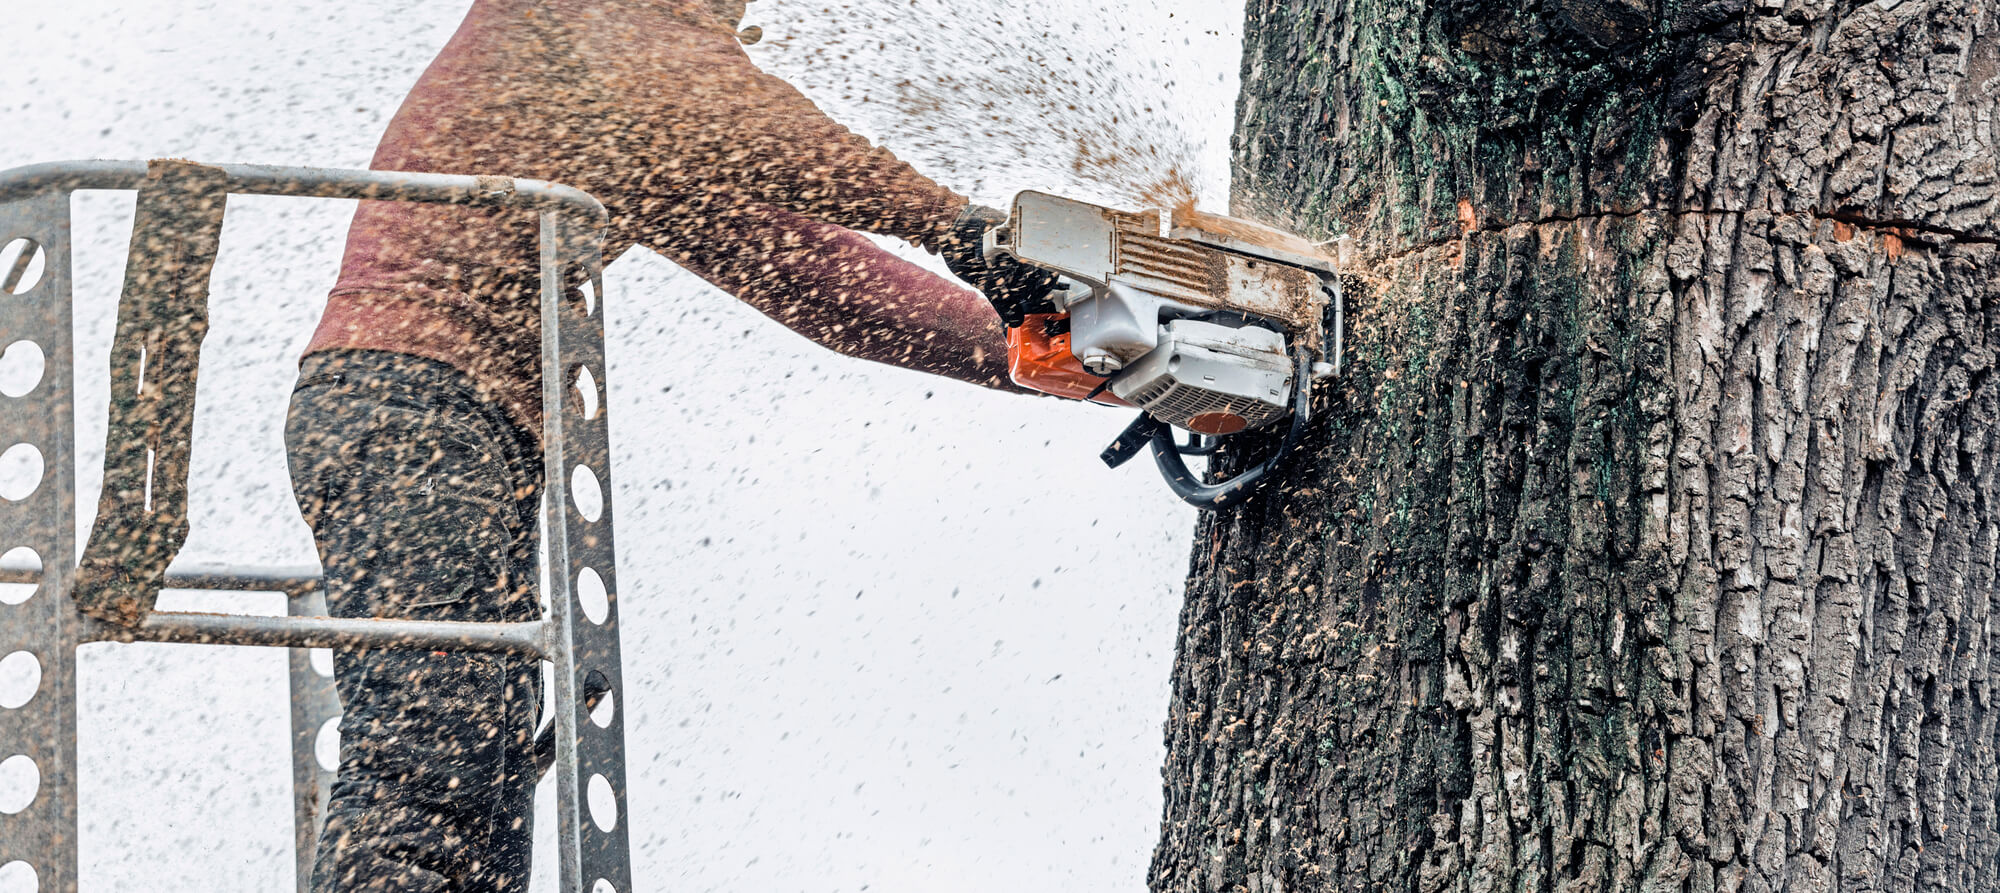 tree cutting service in river ridge - Big Easy Tree Removal